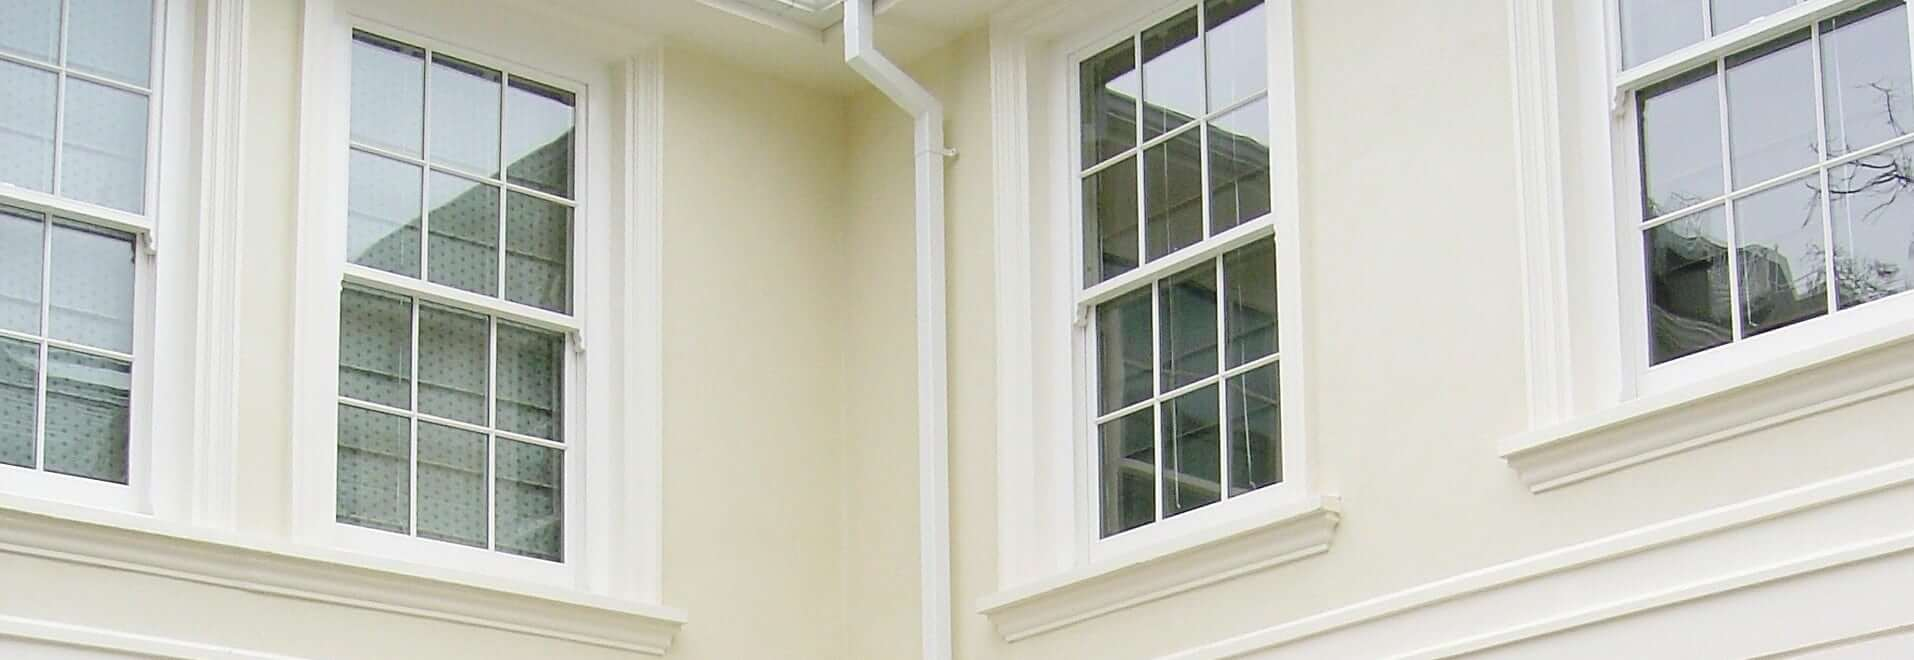 Bespoke box sash windows